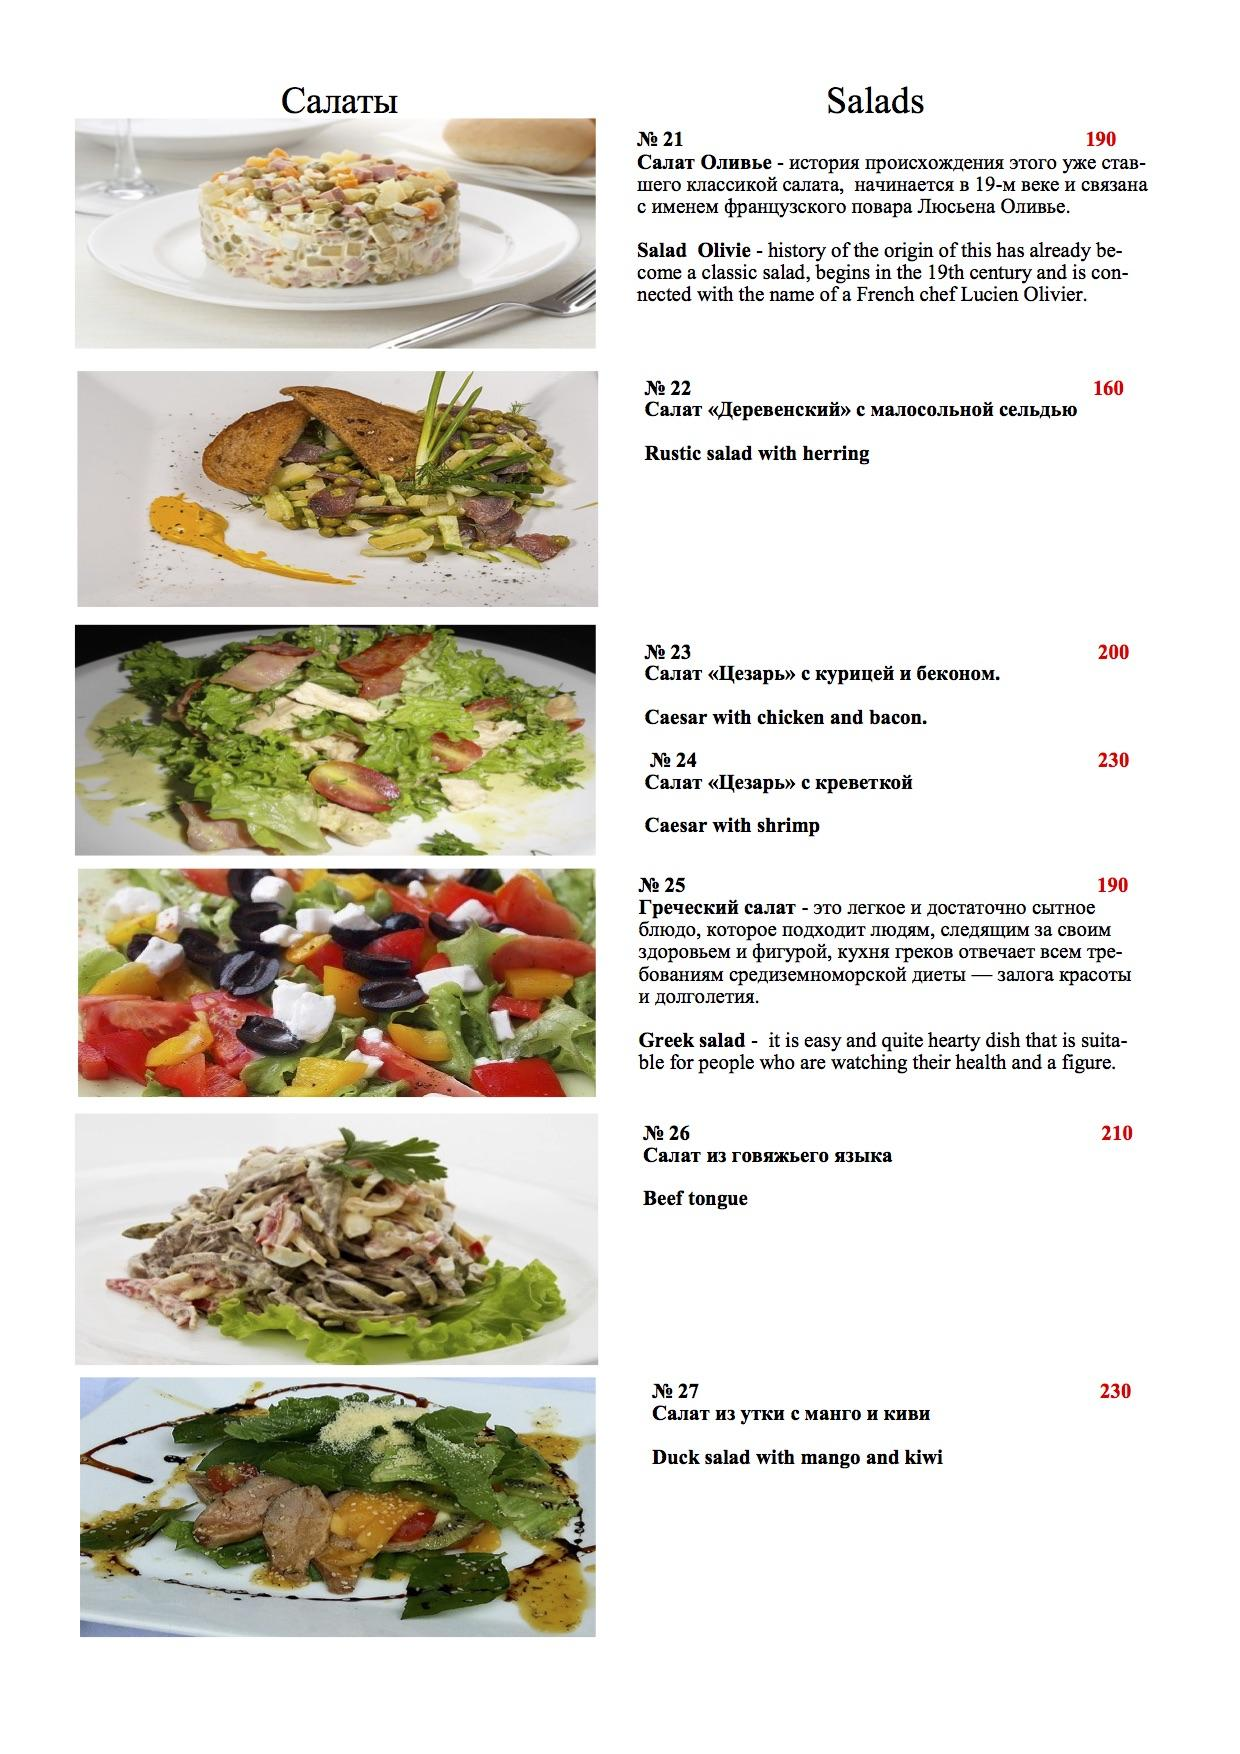 Food delivery in Phuket - Salads